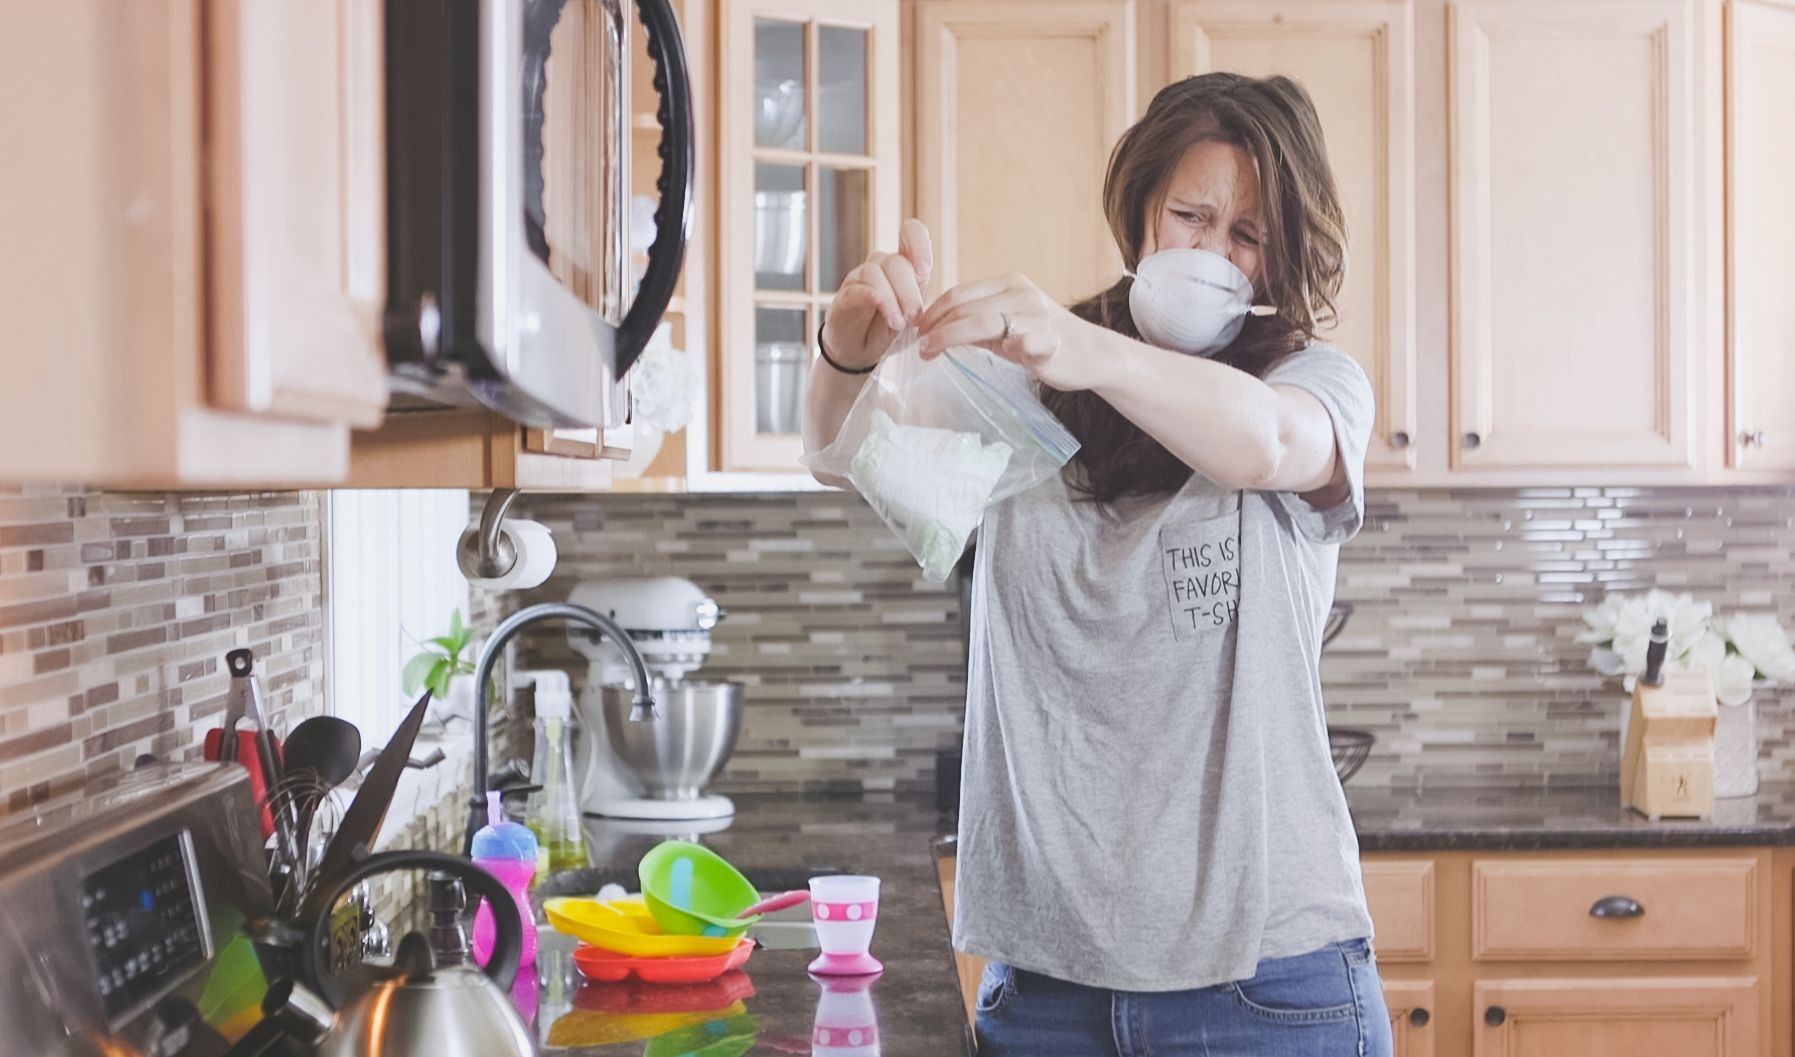 The struggle is real. Watch + laugh as our friends at Story of This Life share a snapshot of what diaper changes looked like before they received the STEP Diaper Pail.